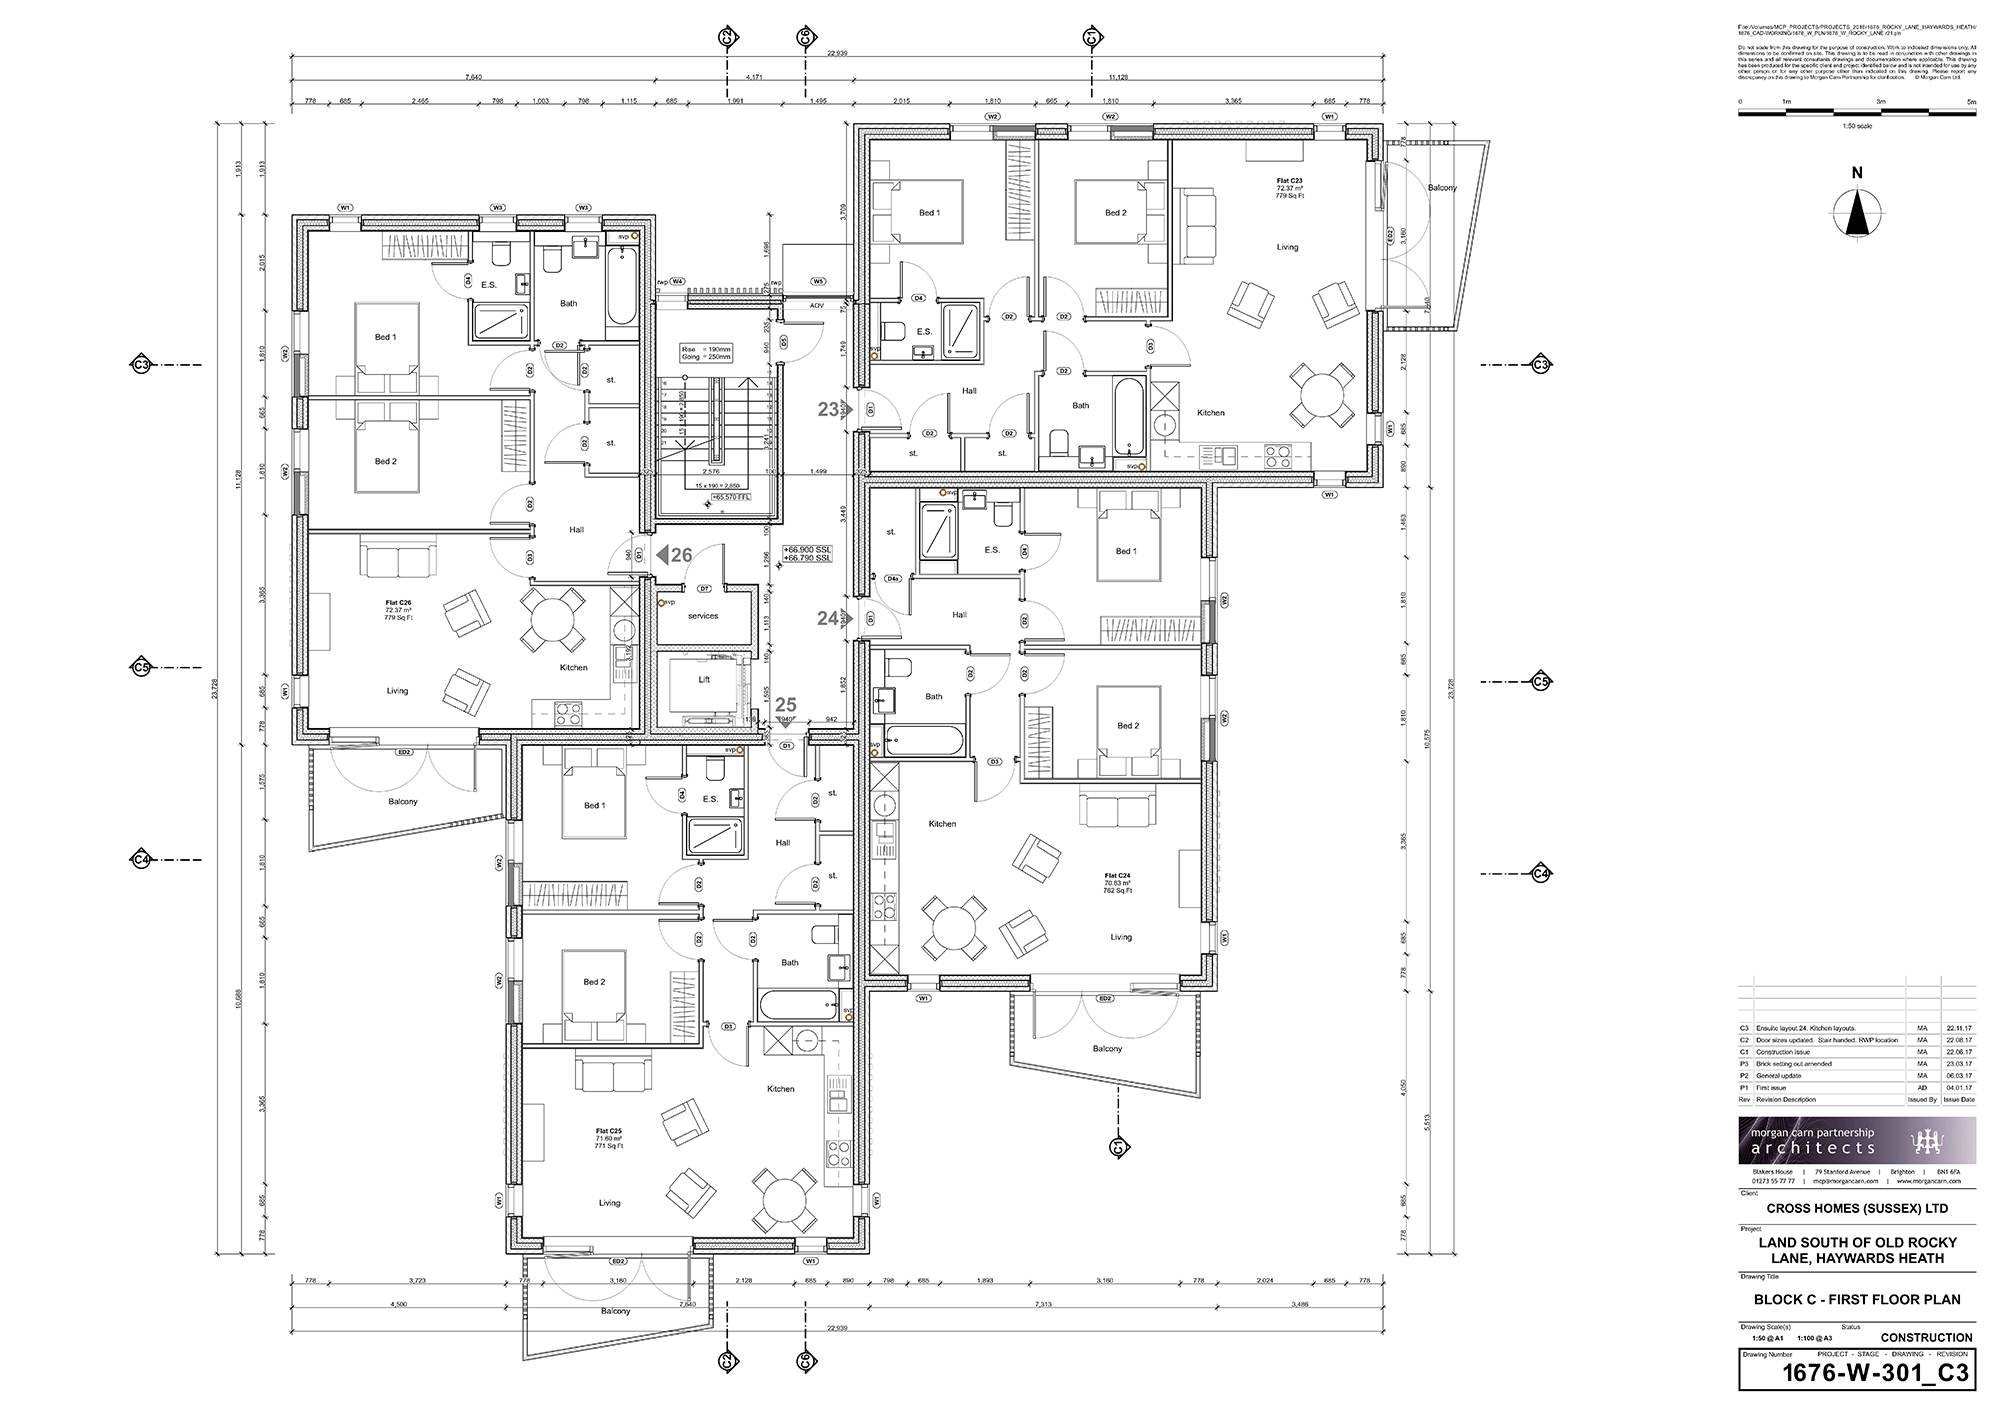 Block B - First Floor Plan